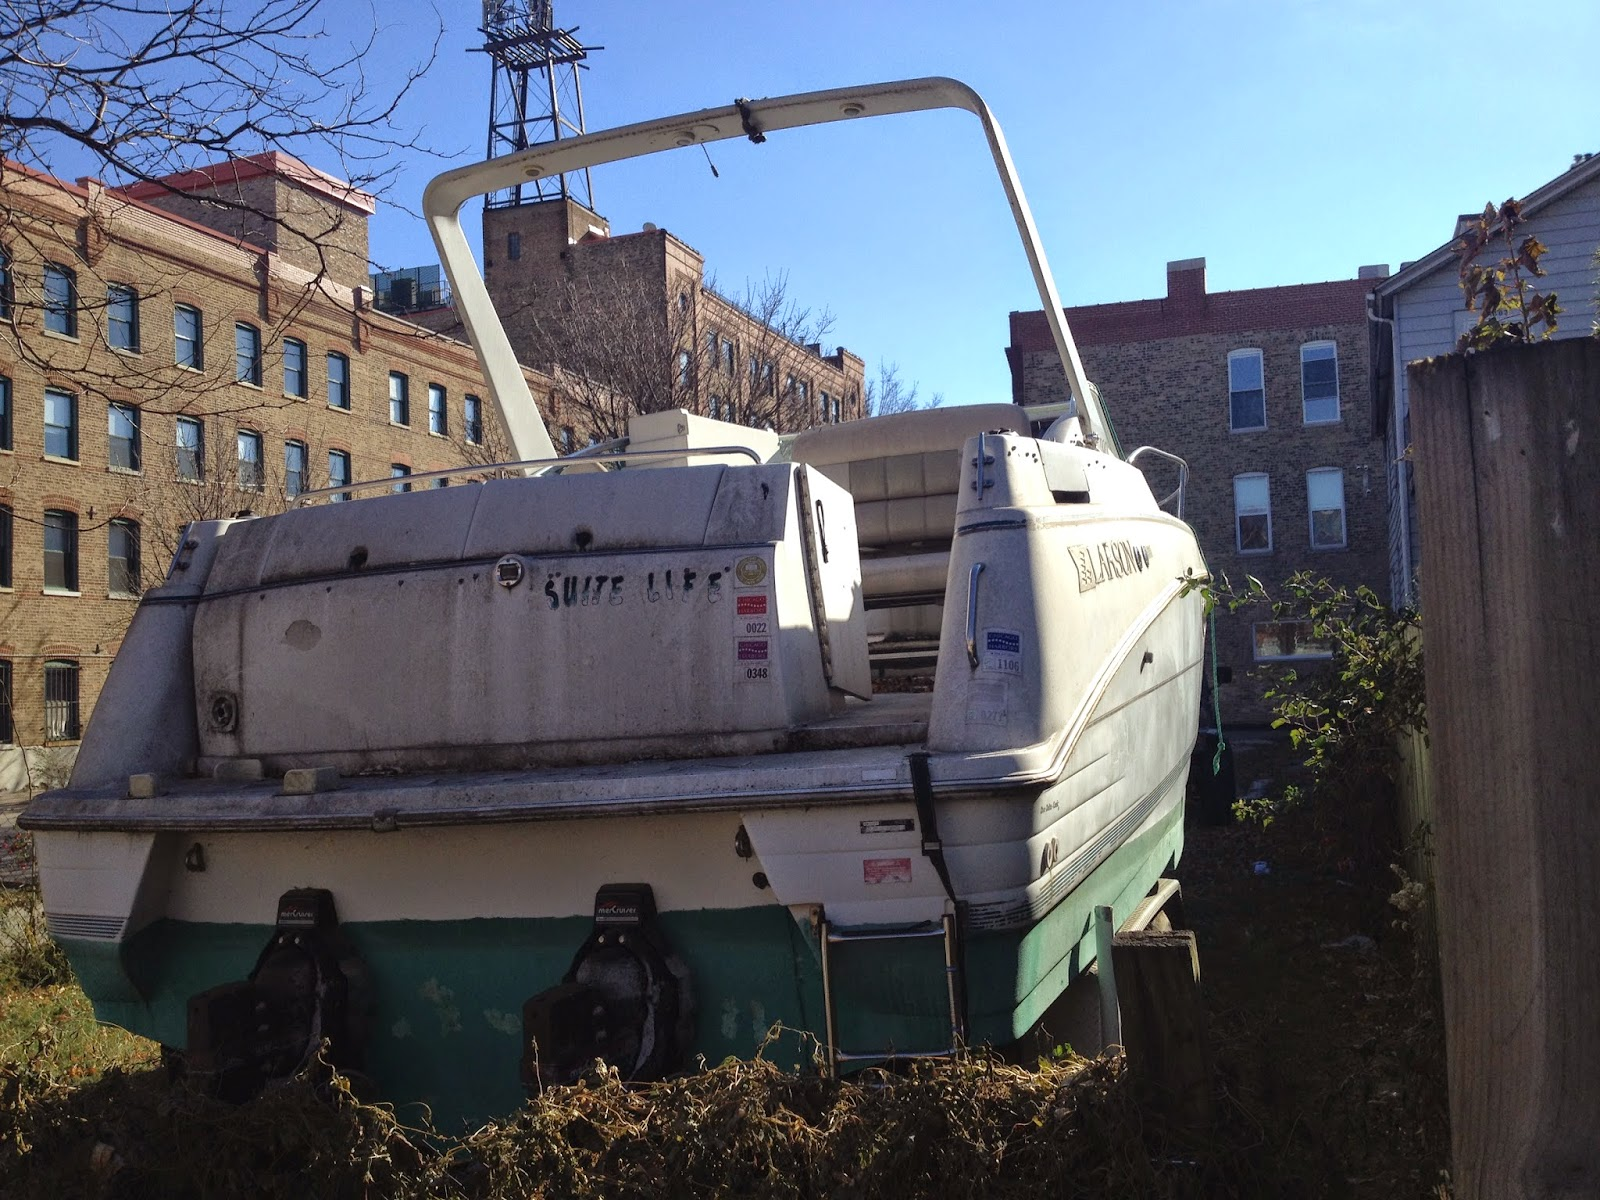 $300 boat in Chicago West Town neighborhood